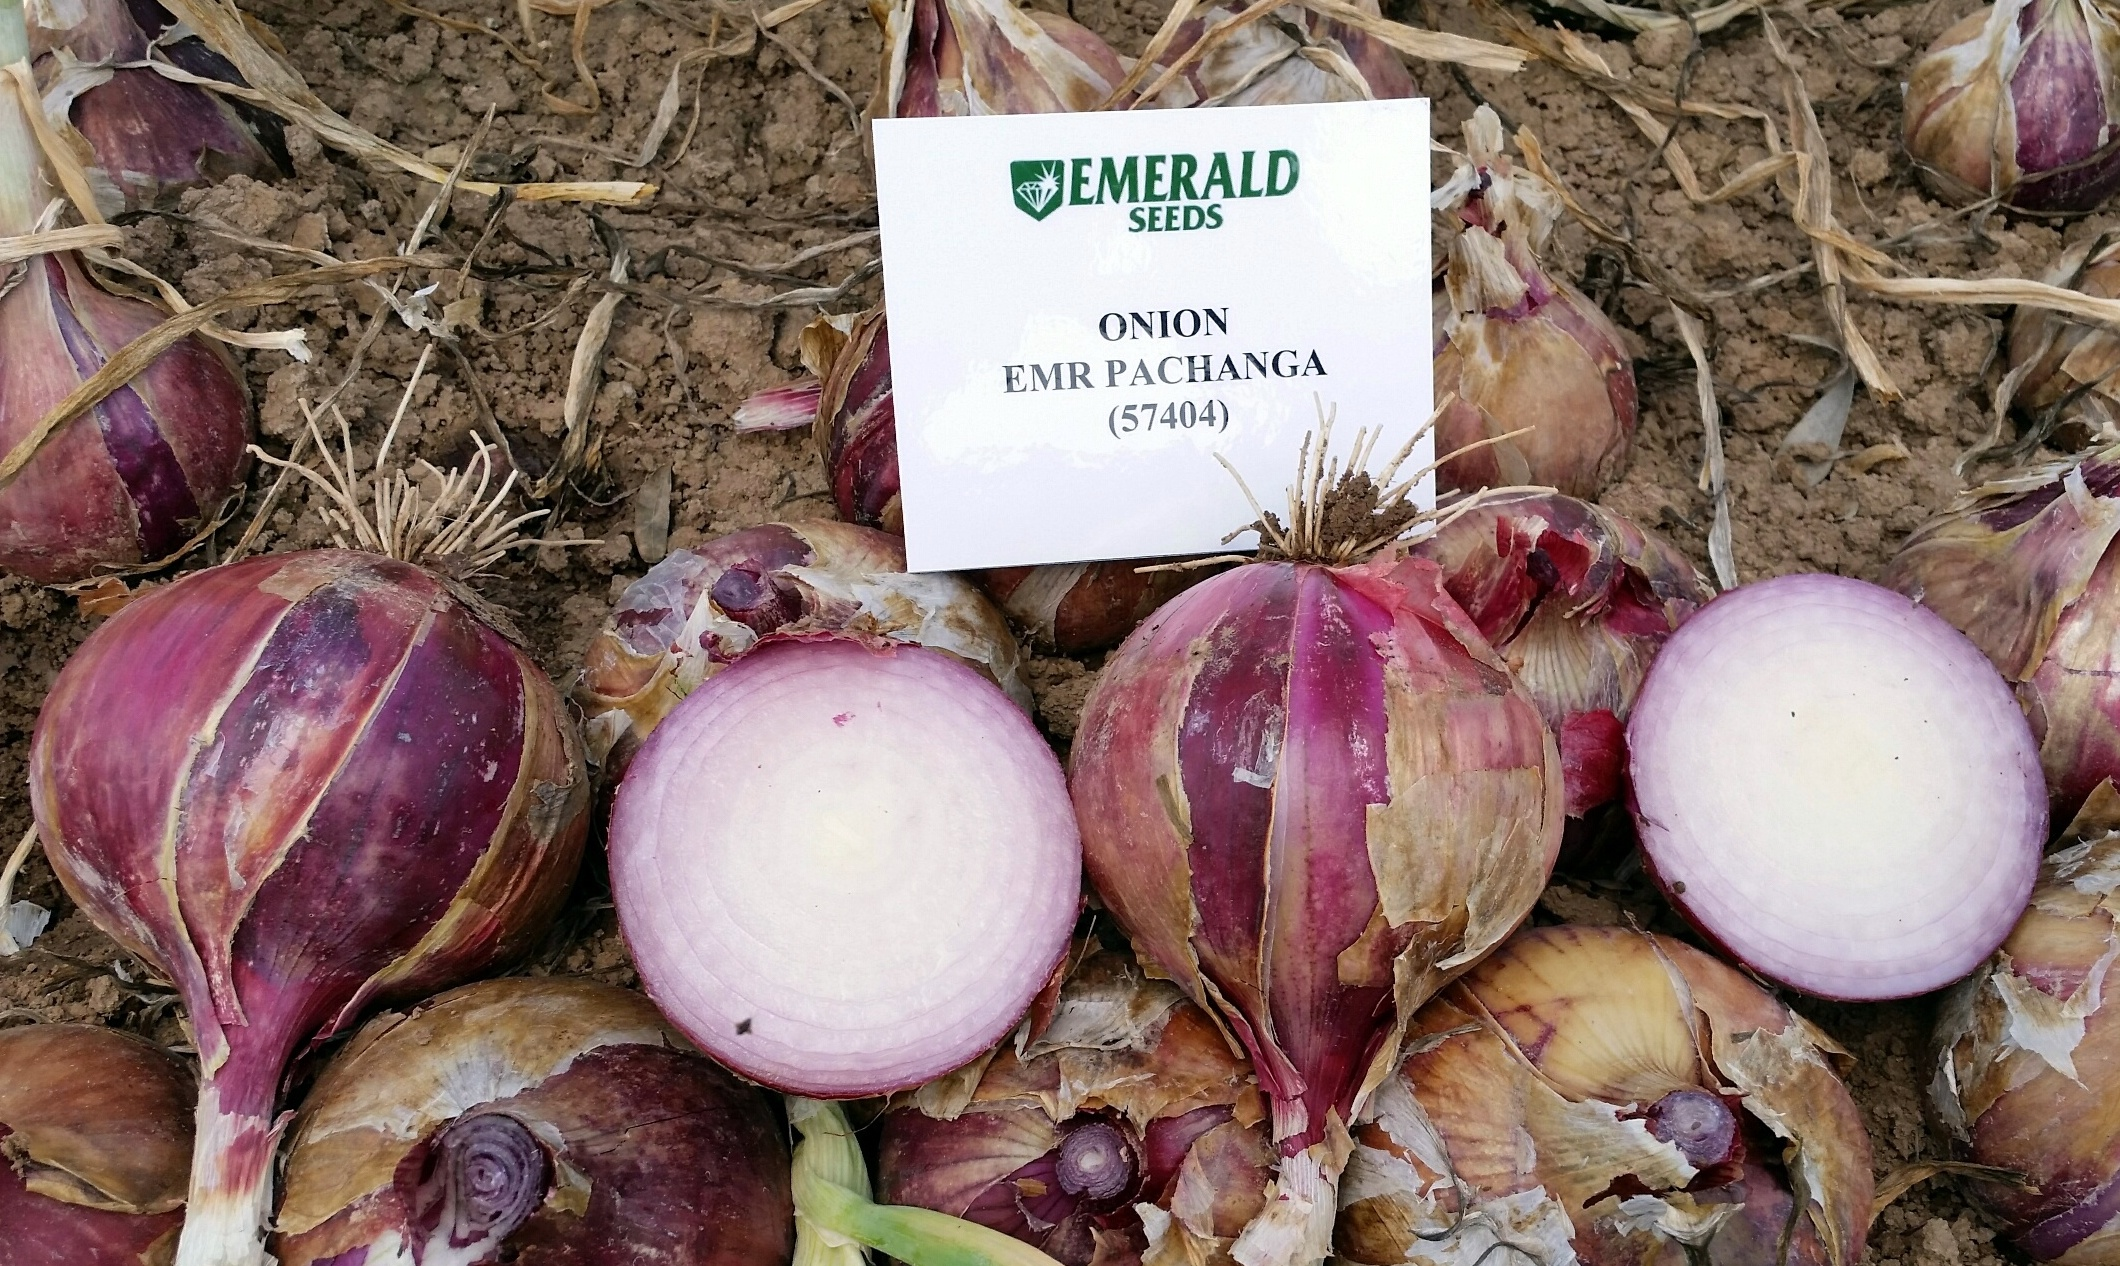 Onion EMR Pachanga  57404